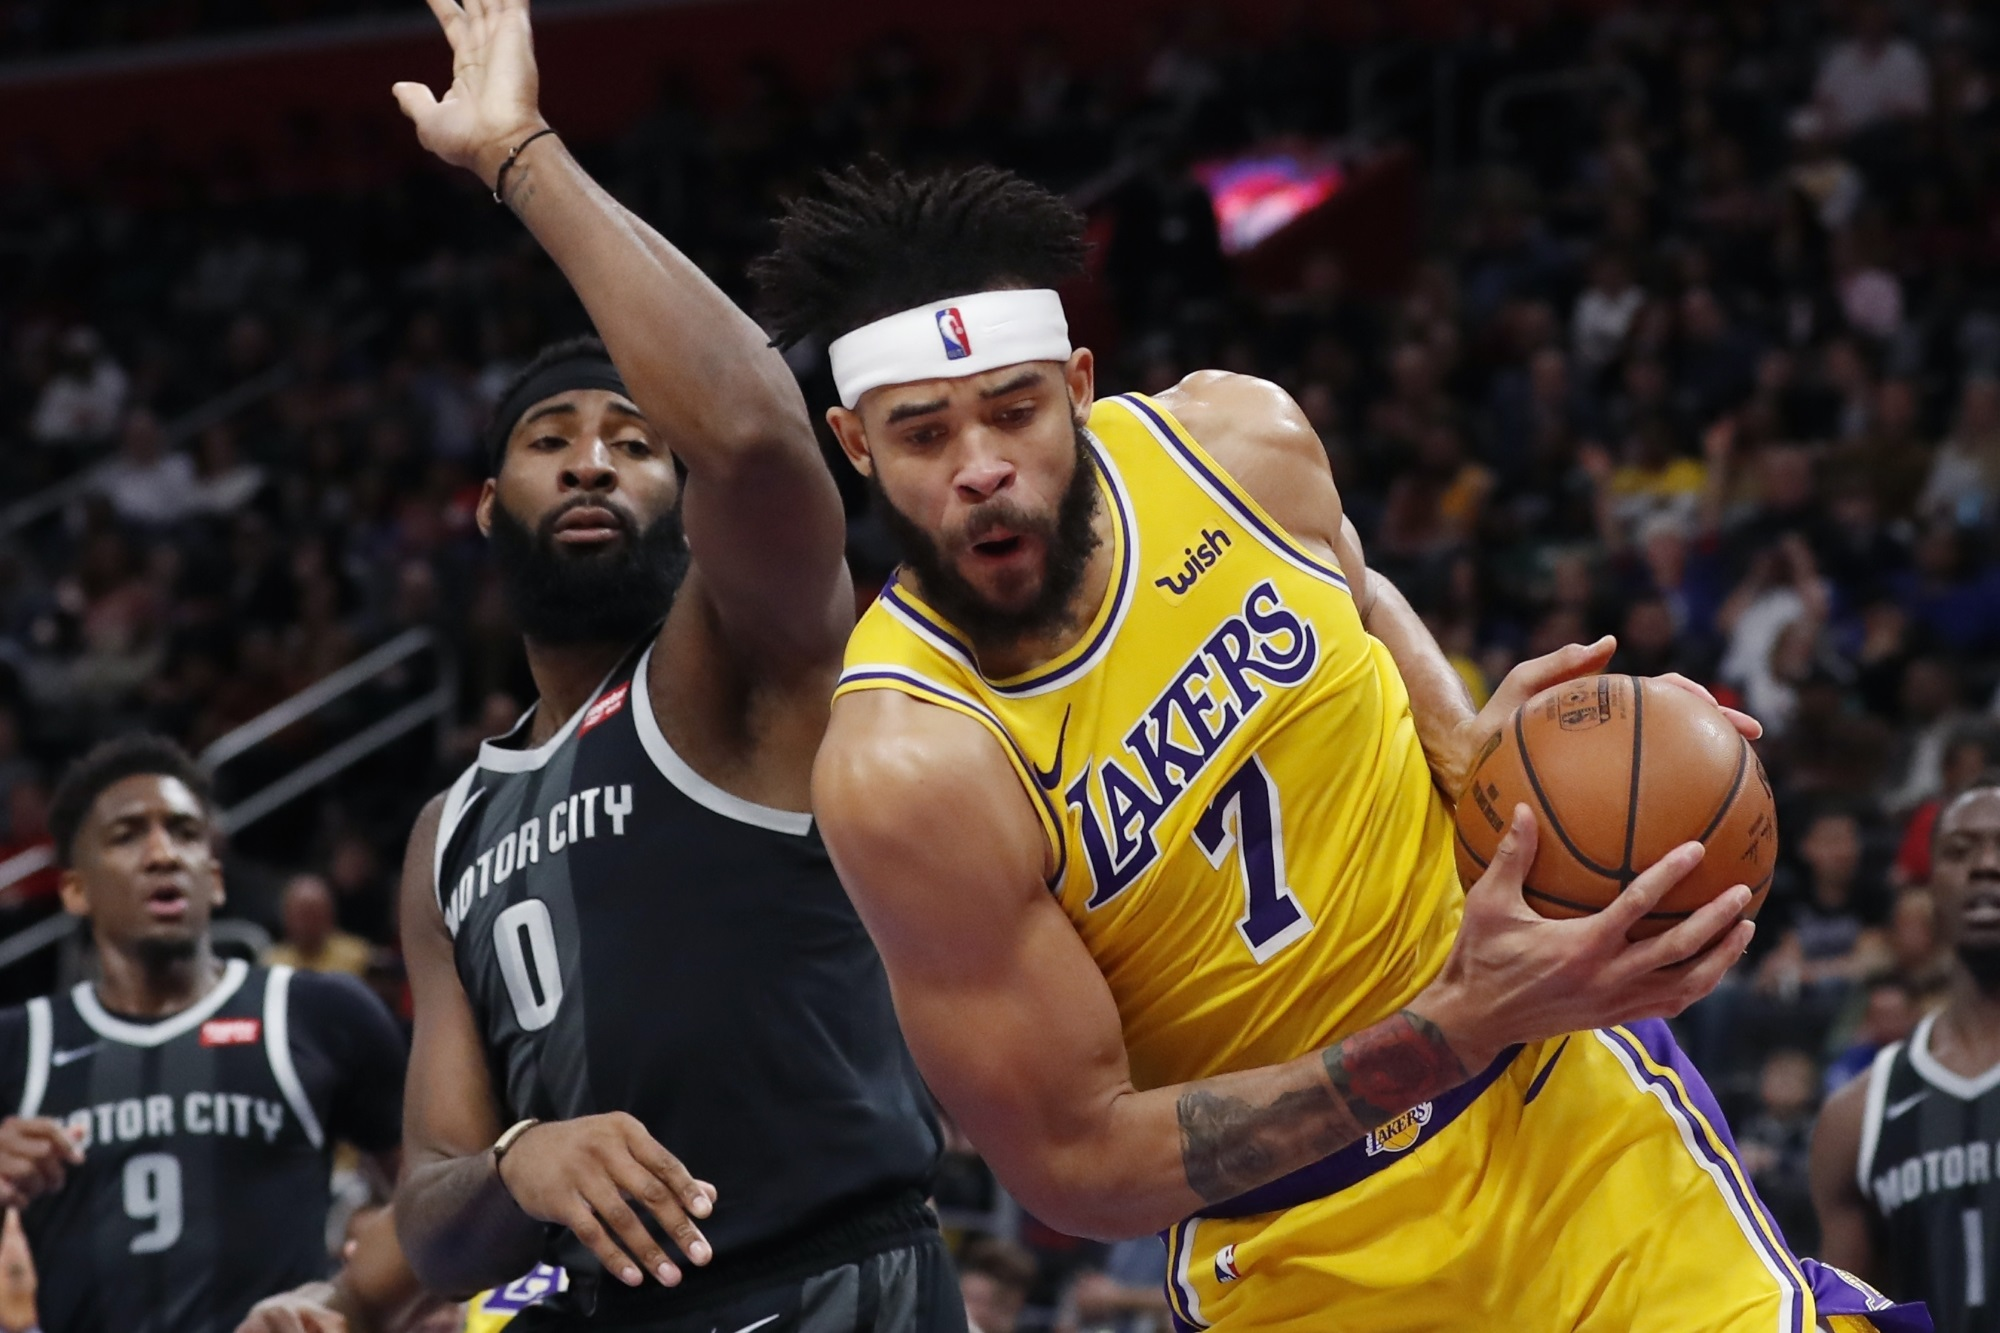 JaVale McGee and Andre Drummond, Los Angeles Lakers vs Detroit Pistons at Little Caesars Arena